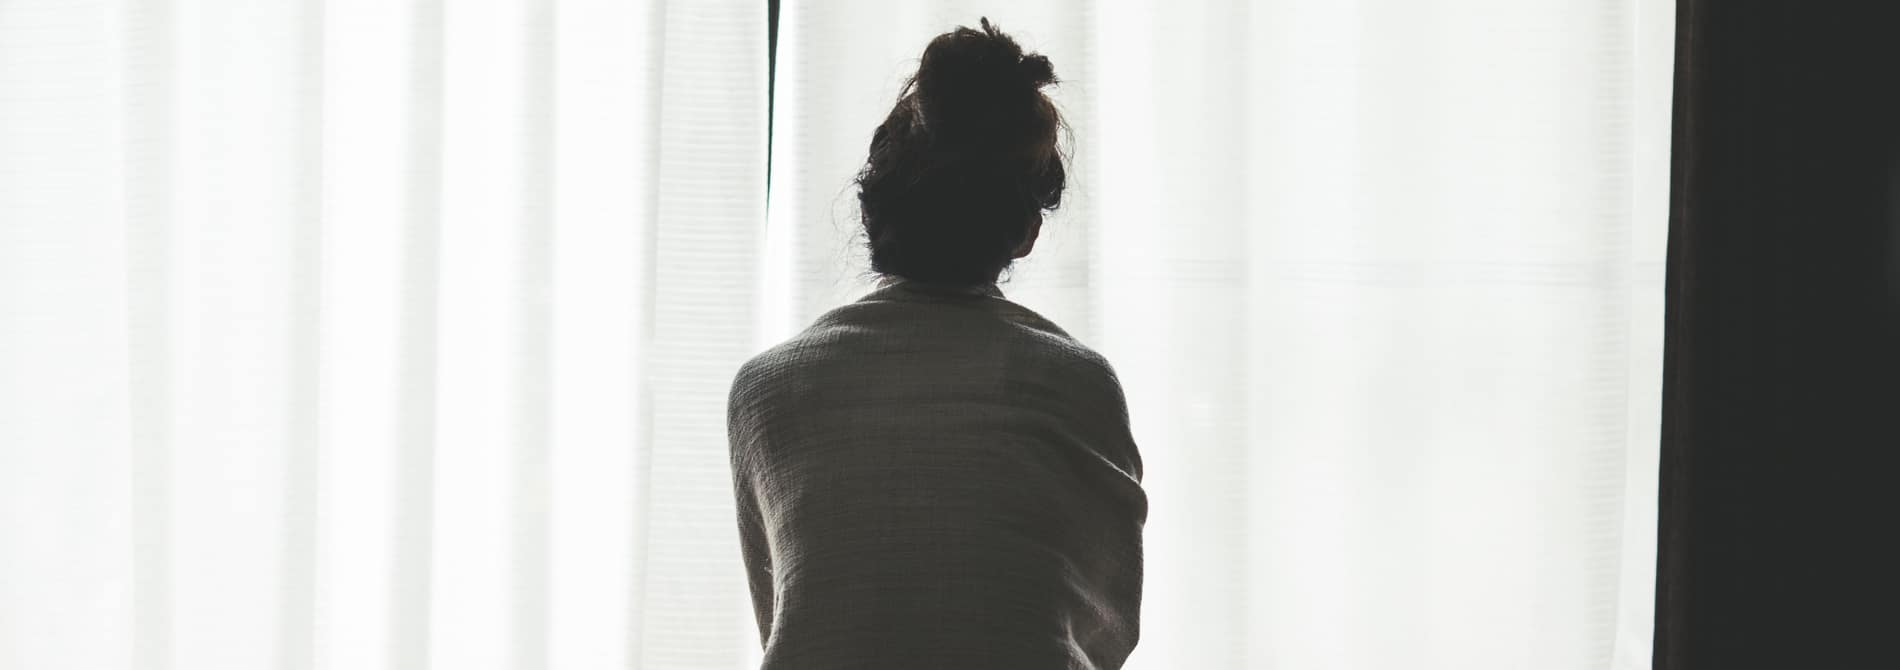 Common Co-Occurring Disorders Among Women